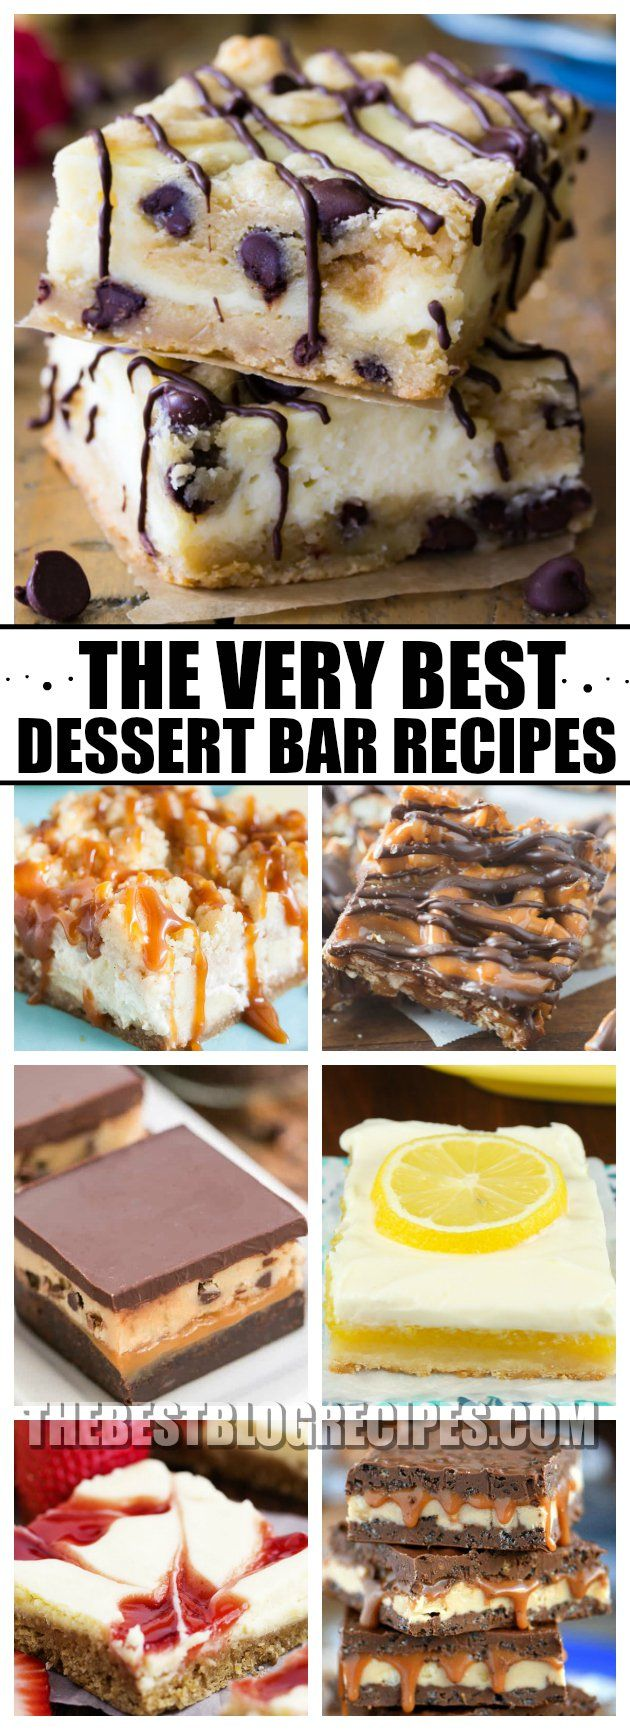 Need a cure for your sweet tooth? Try The Best Dessert Bar Recipes! These bars are the most decadent, sweet, and addicting desserts! One bite of any of these recipes and you will be hooked! via @bestblogrecipes